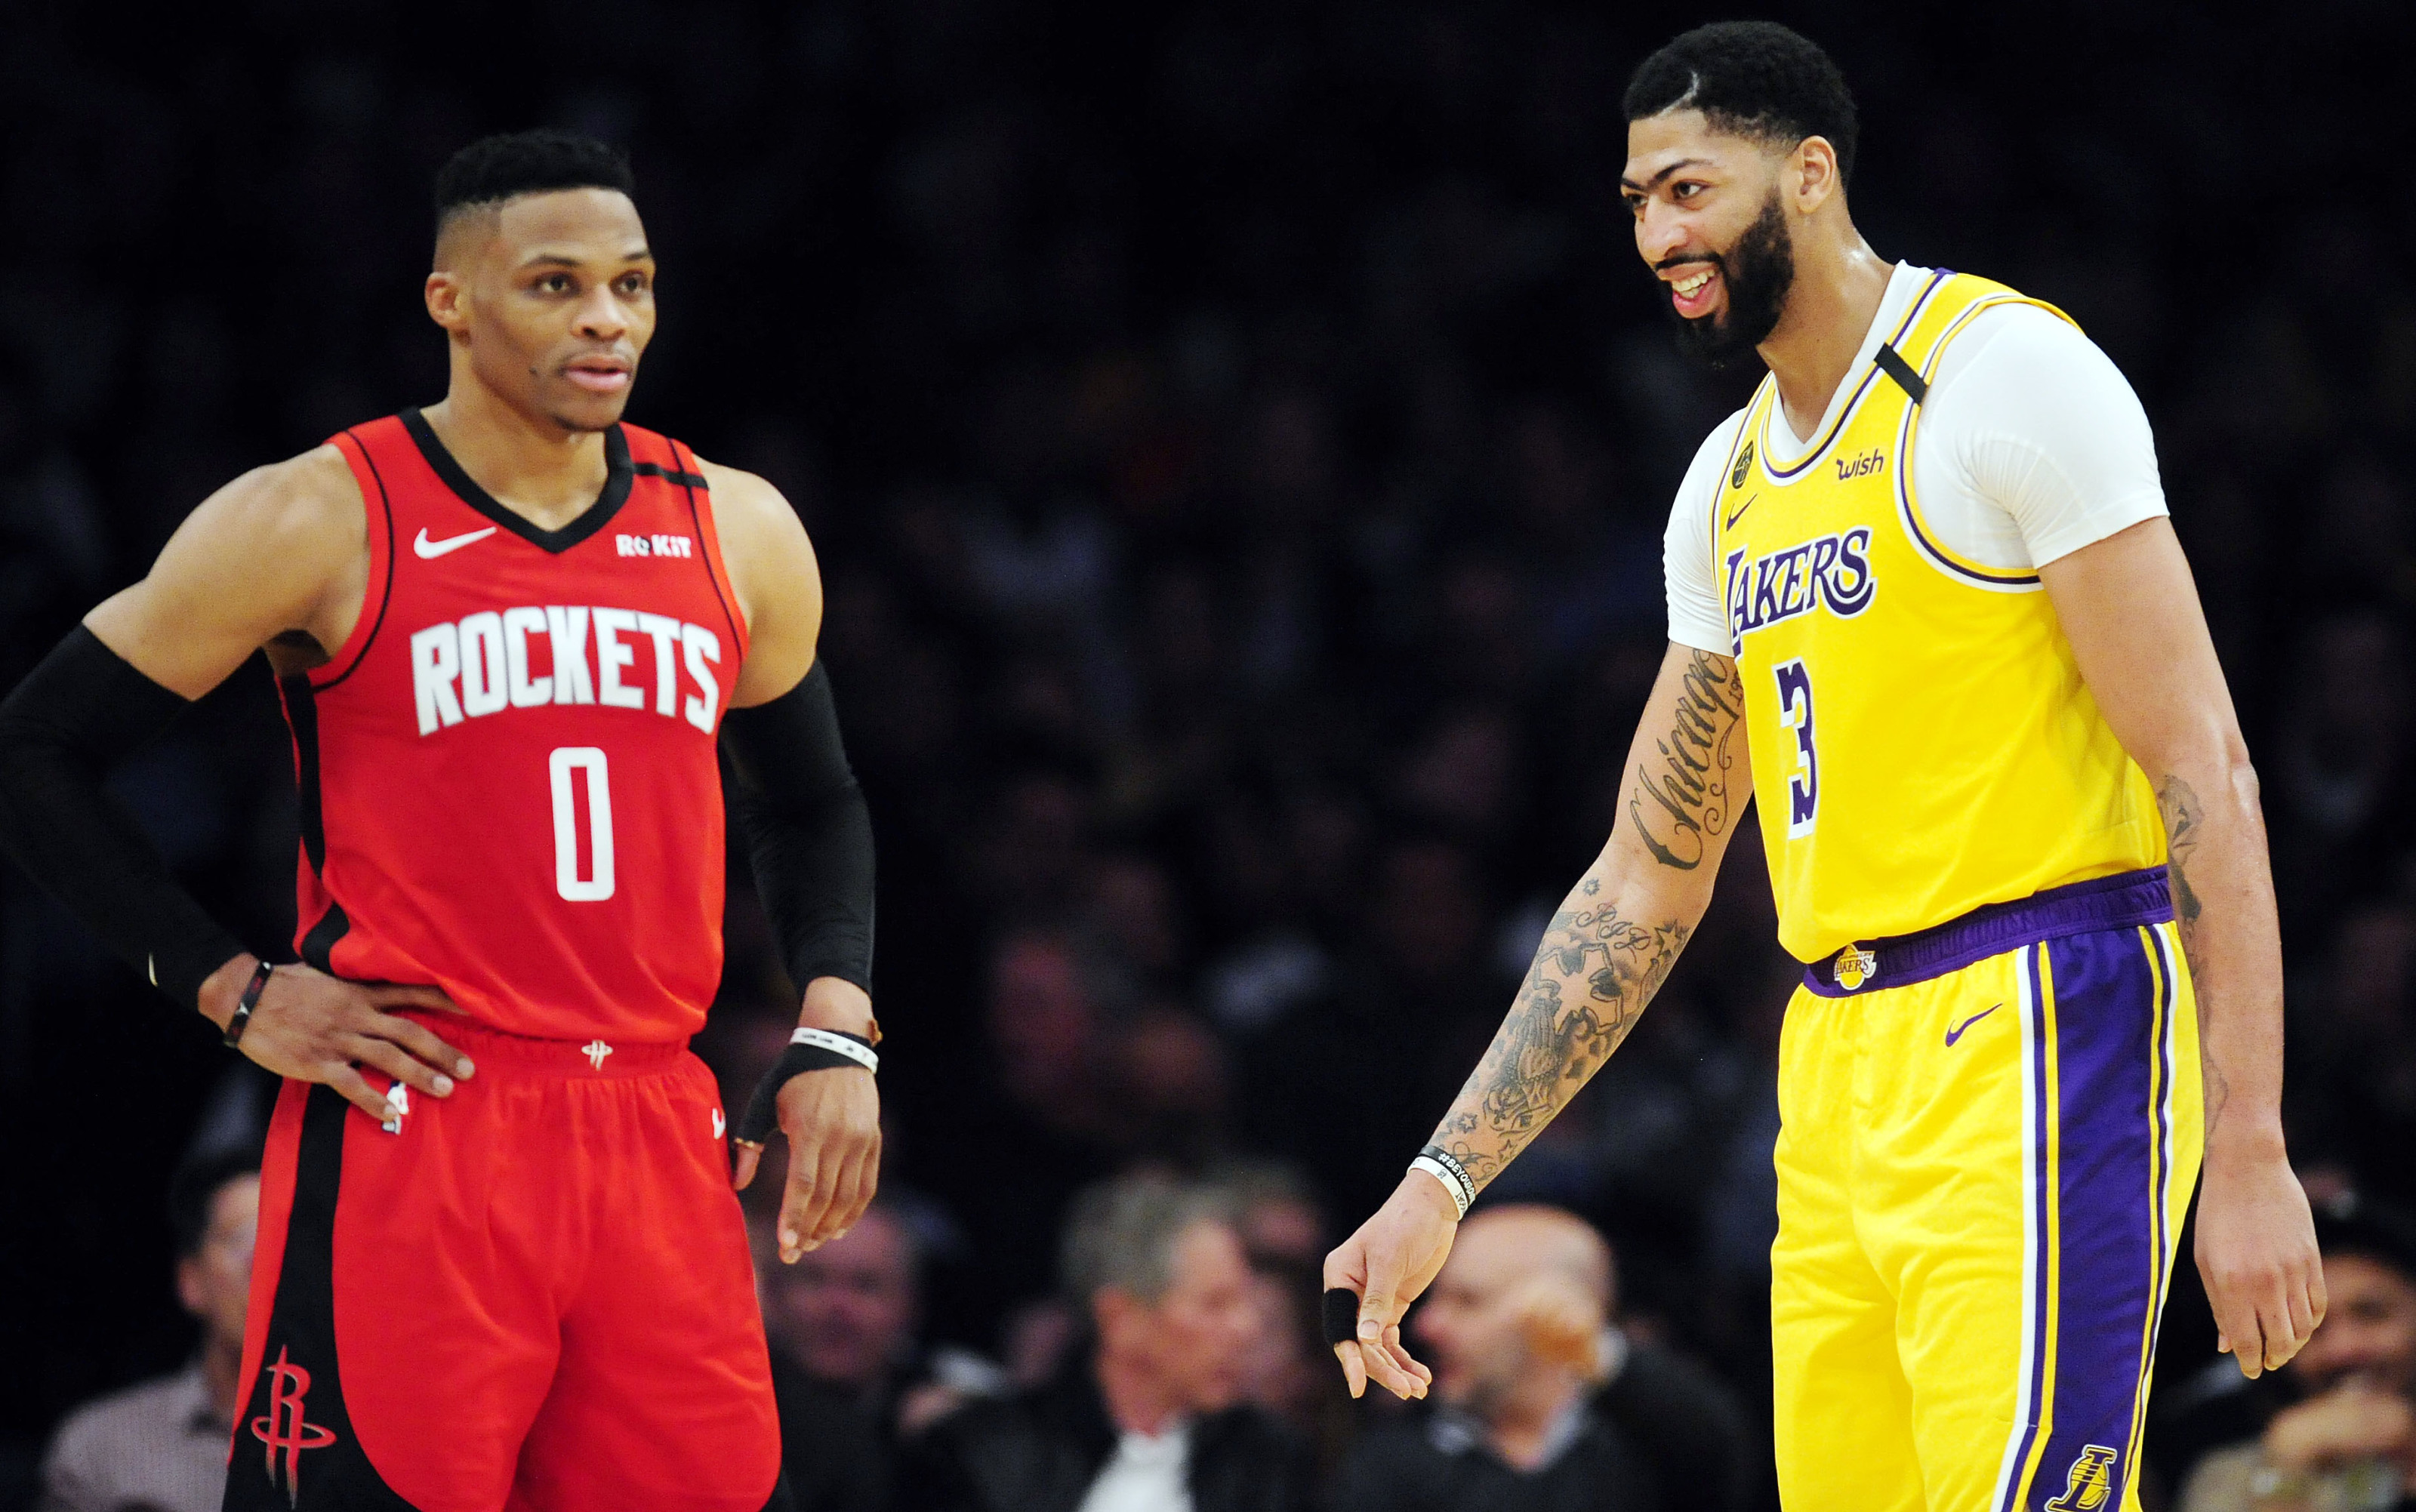 Could the Lakers trade for Russell Westbrook?